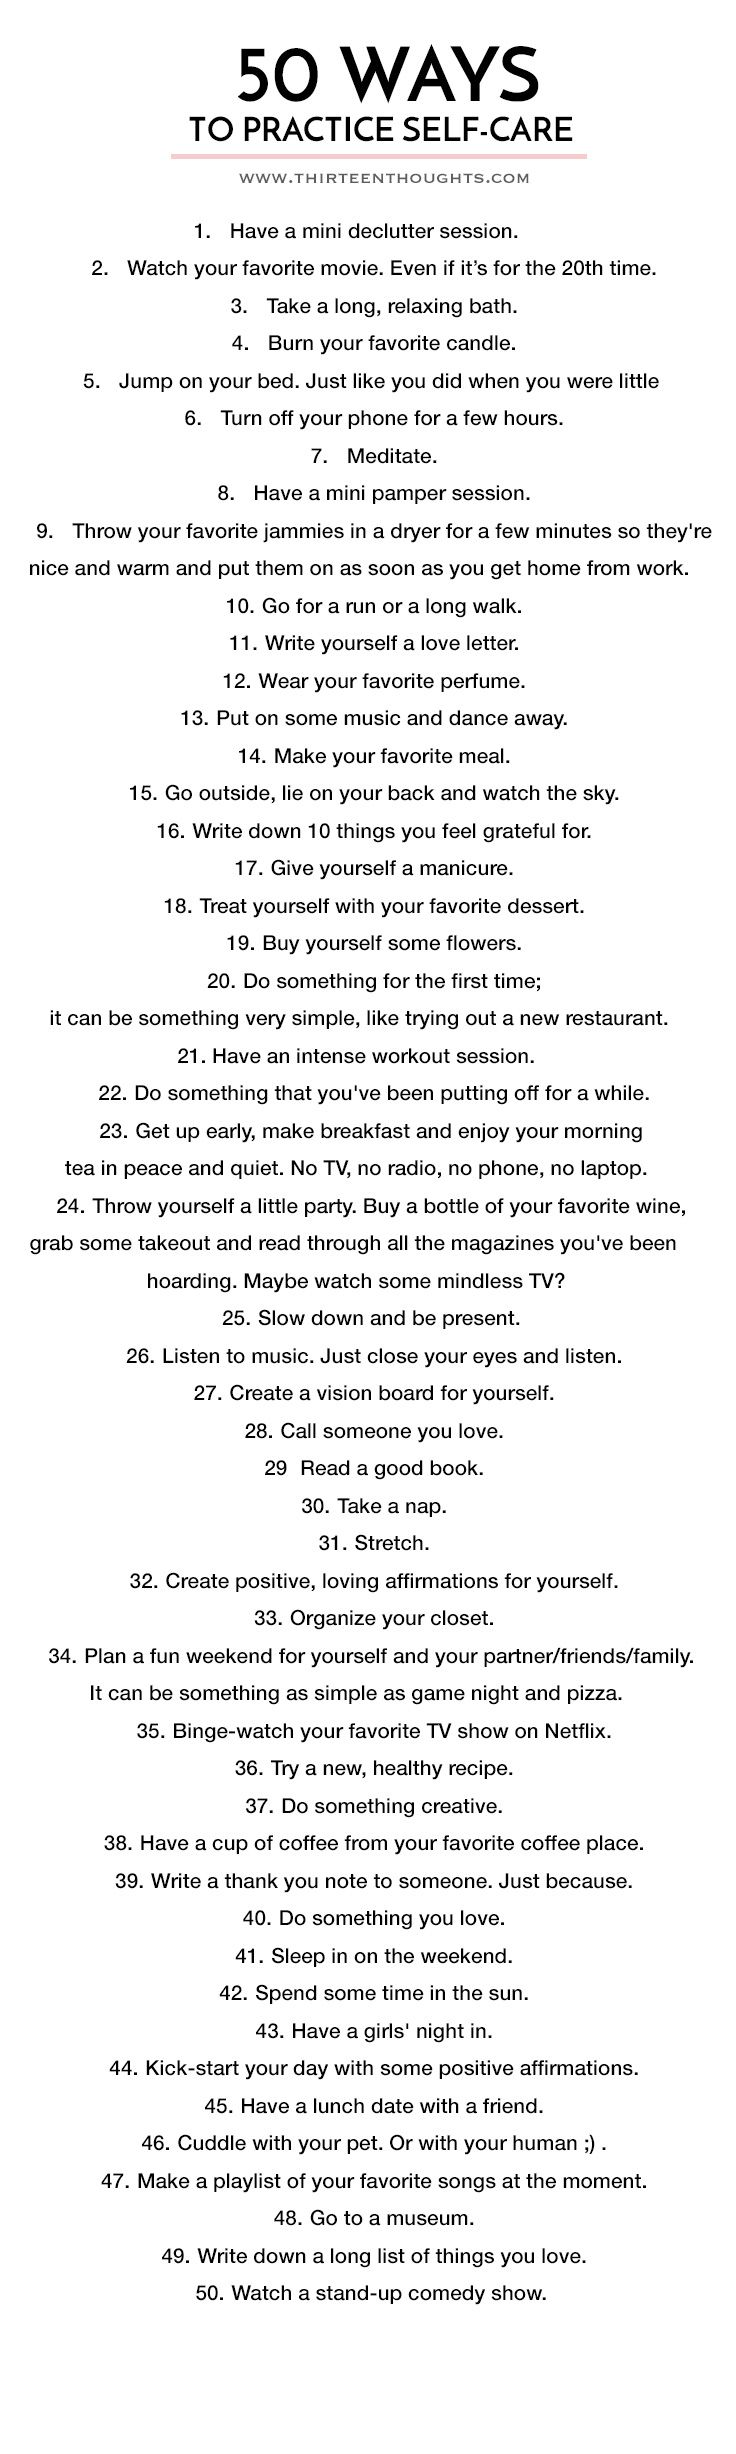 These are little enough that you should incorporate as many as possible into your daily routine. That way, even if you're at work or running errands, or doing something that is seemingly not for you, you are still taking care of yourself. I started doing this recently and it really helps to stay stress free and in a better mood.